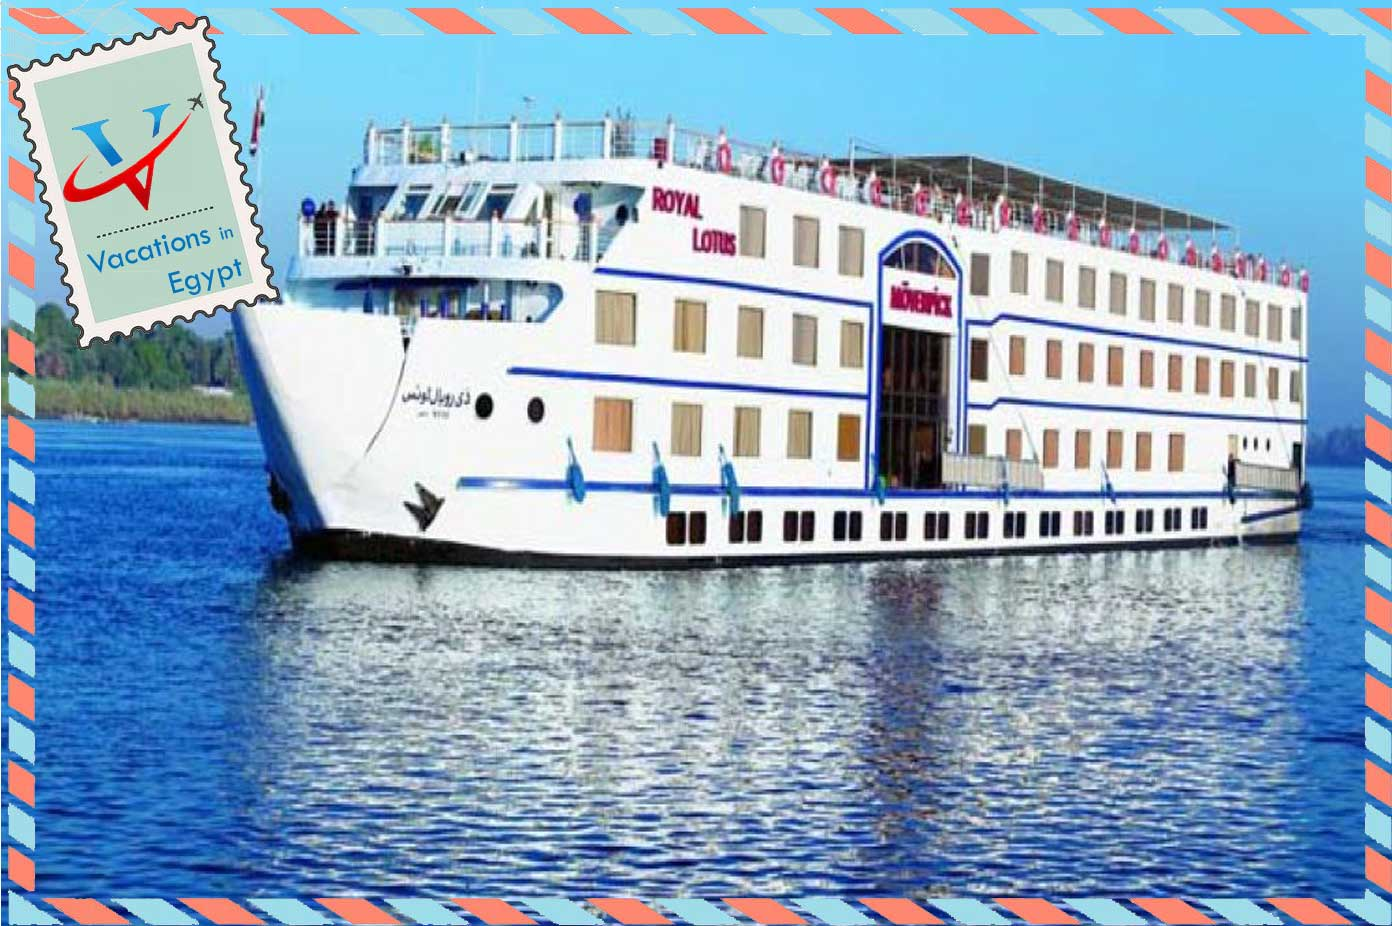 Movenpick Royal Lotus Nile cruise